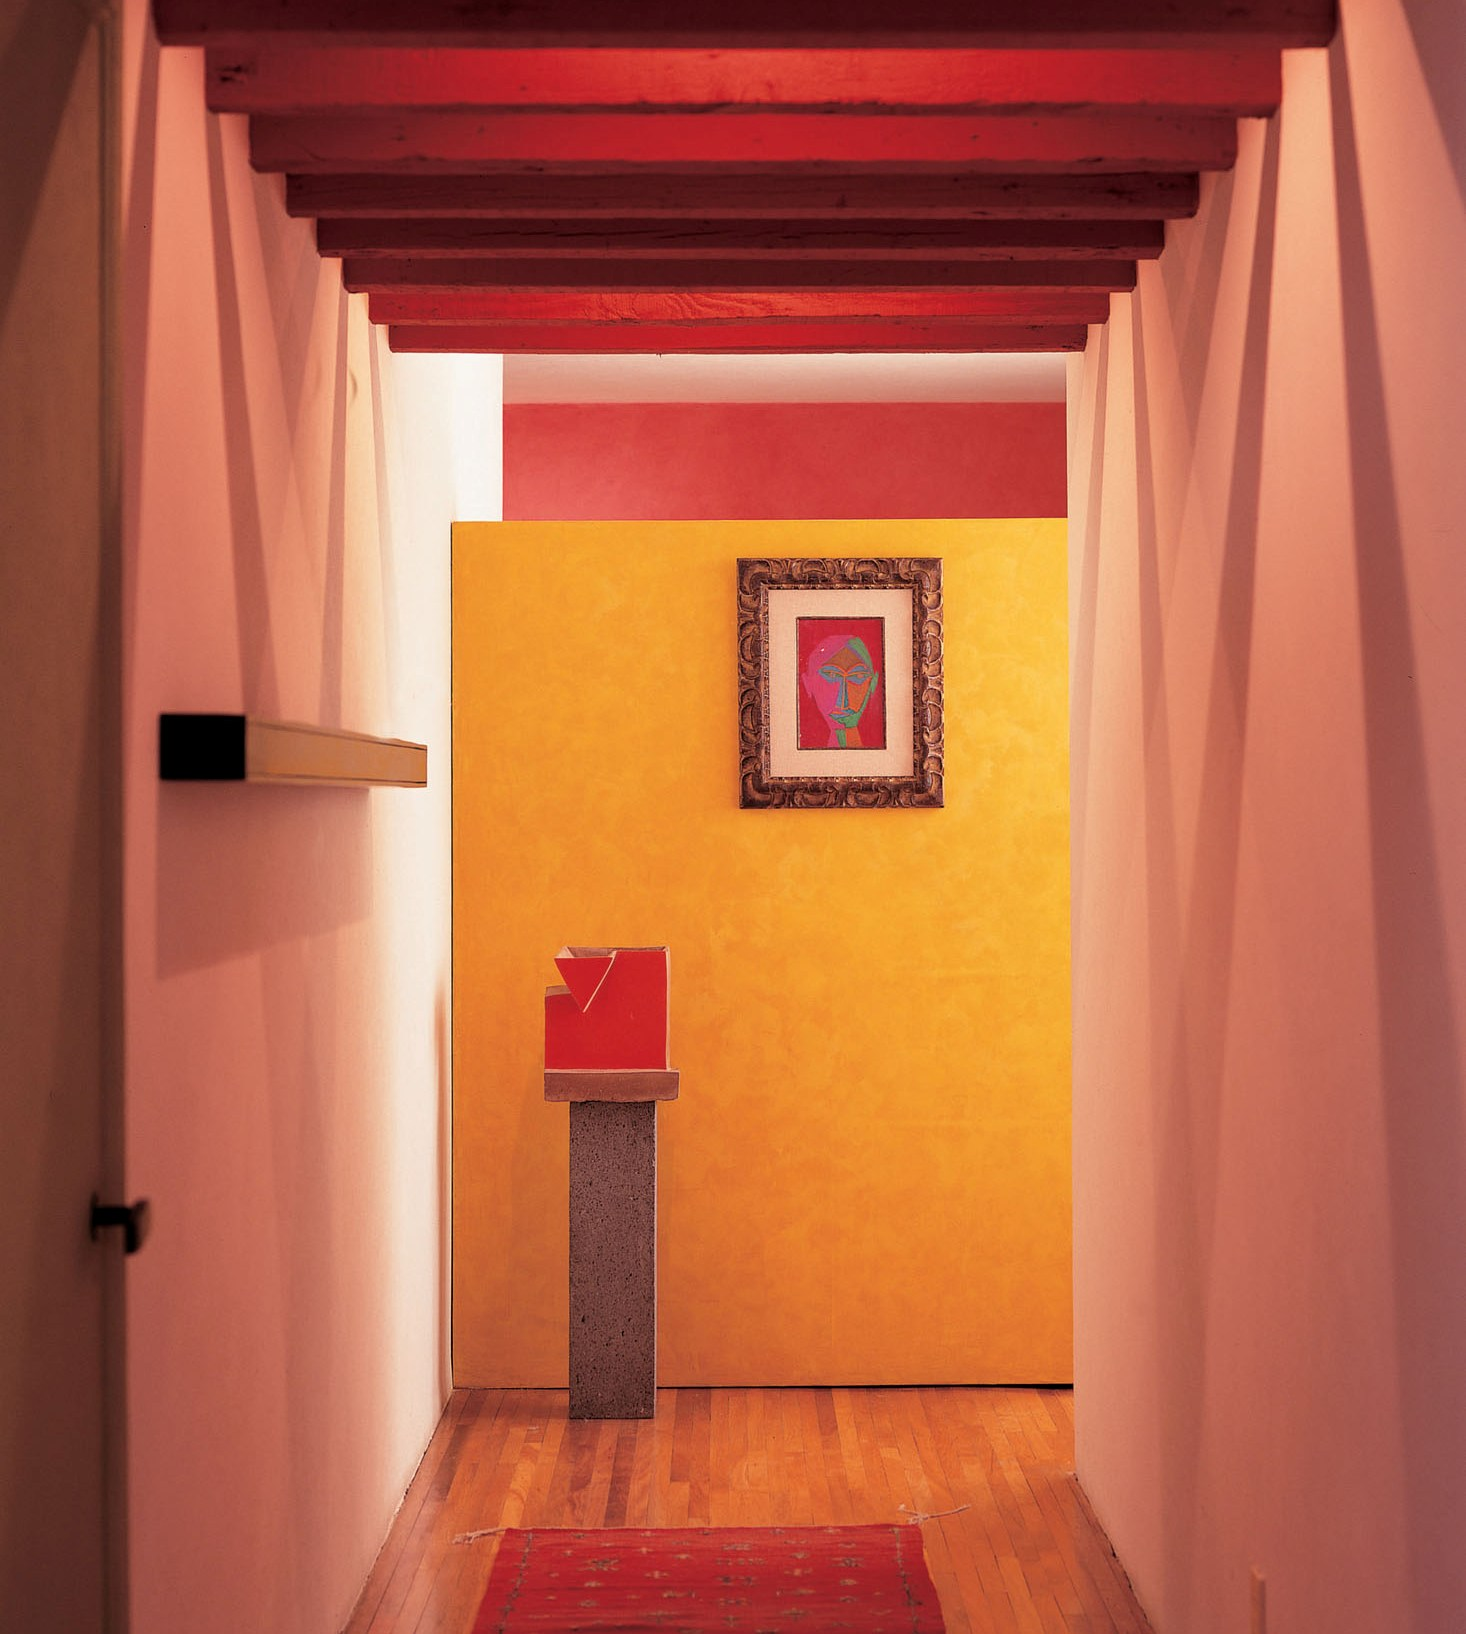 A cheerful Mexican color palette and strategic use of ceiling beams gave better proportion to a long, narrow corridor.